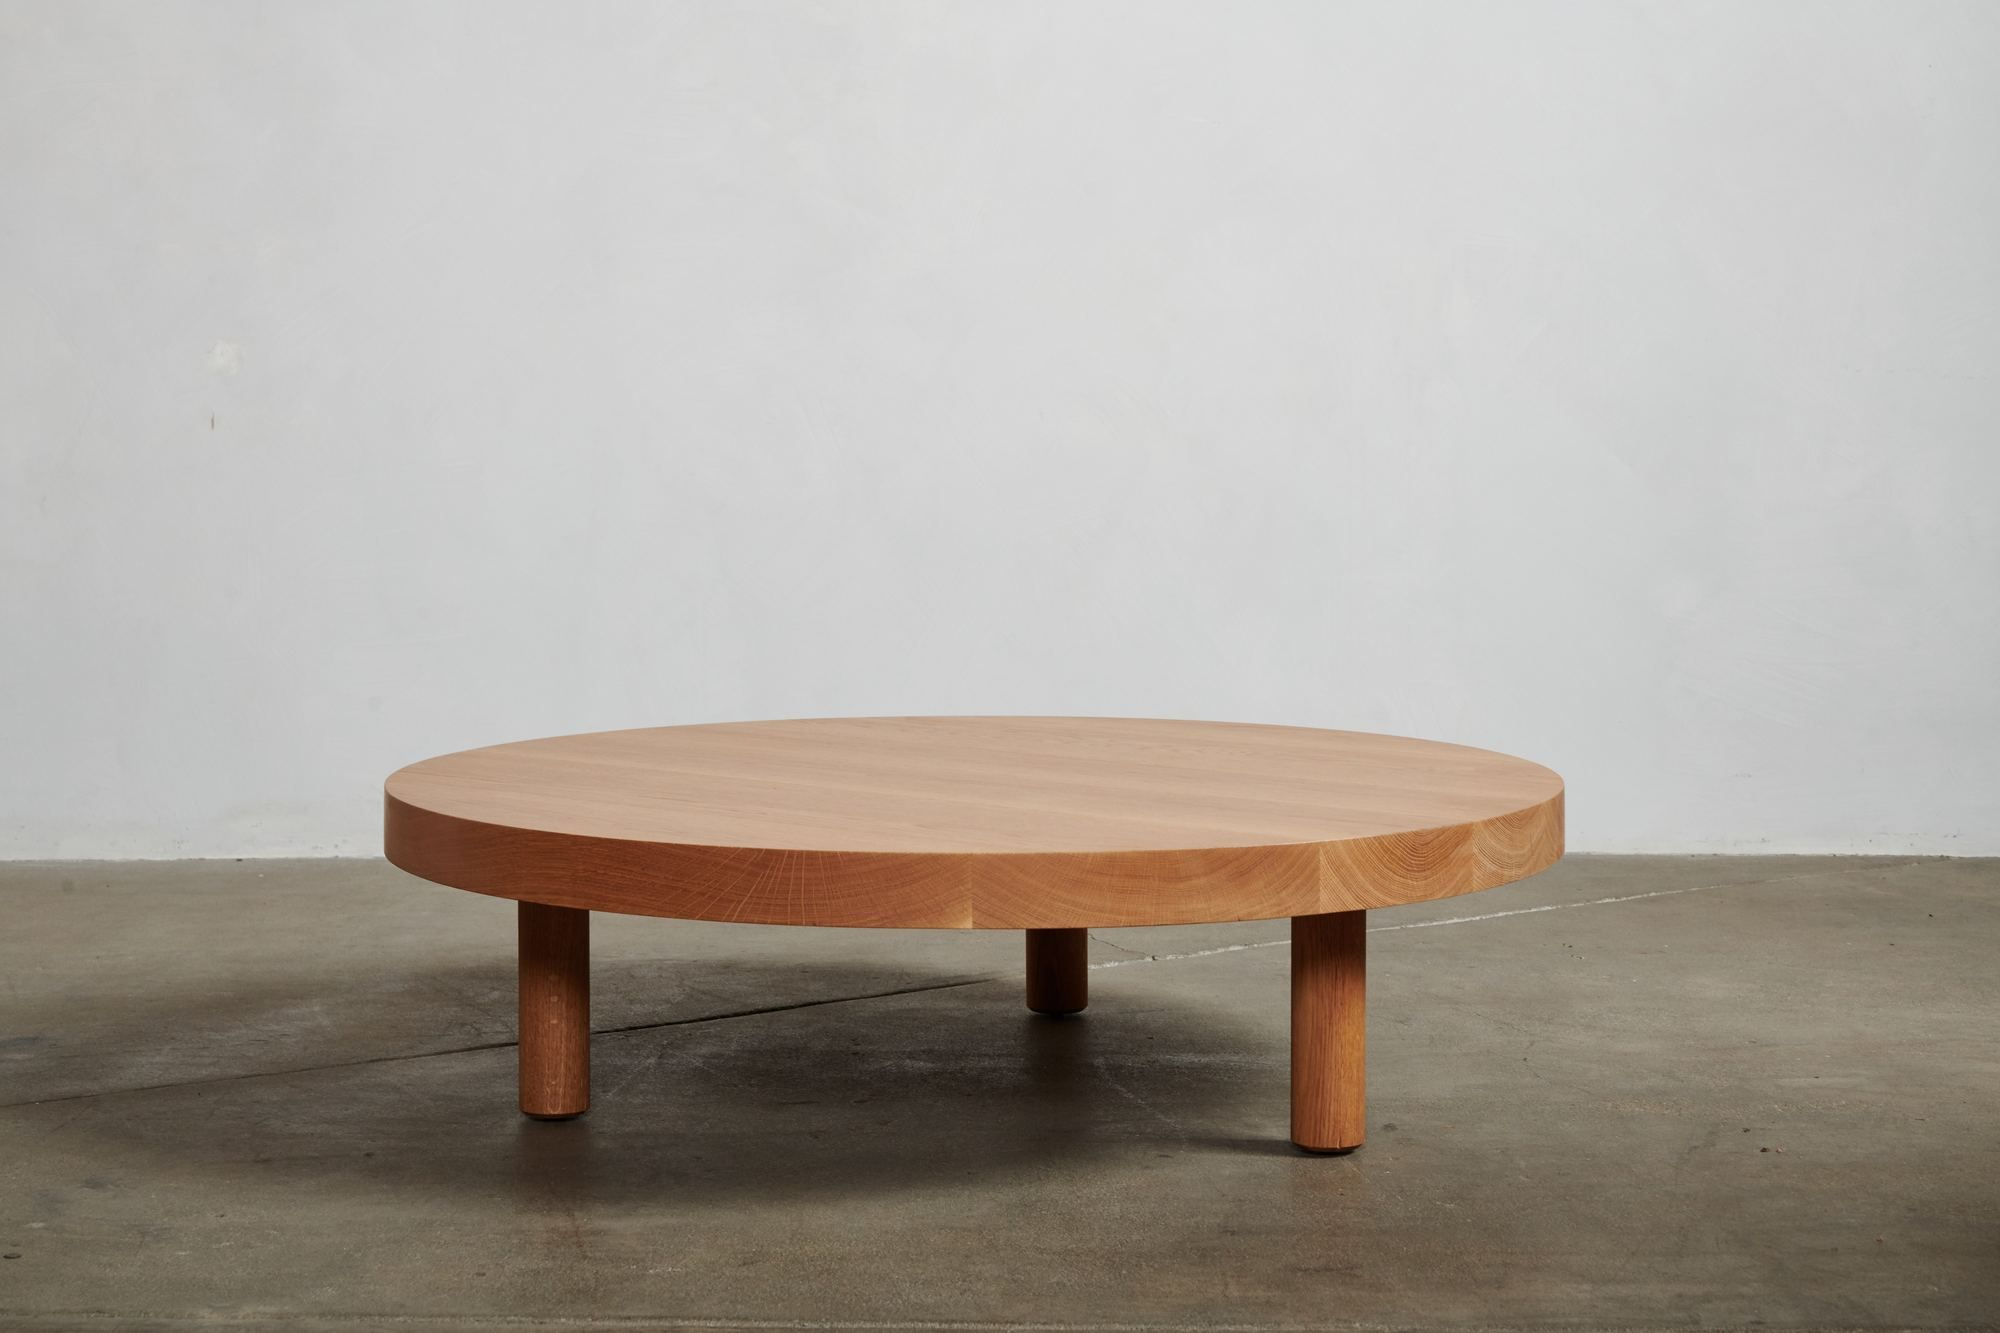 Nickey Kehoe Round Coffee Table Round Coffee Table Round Wood Coffee Table Coffee Table [ 1333 x 2000 Pixel ]